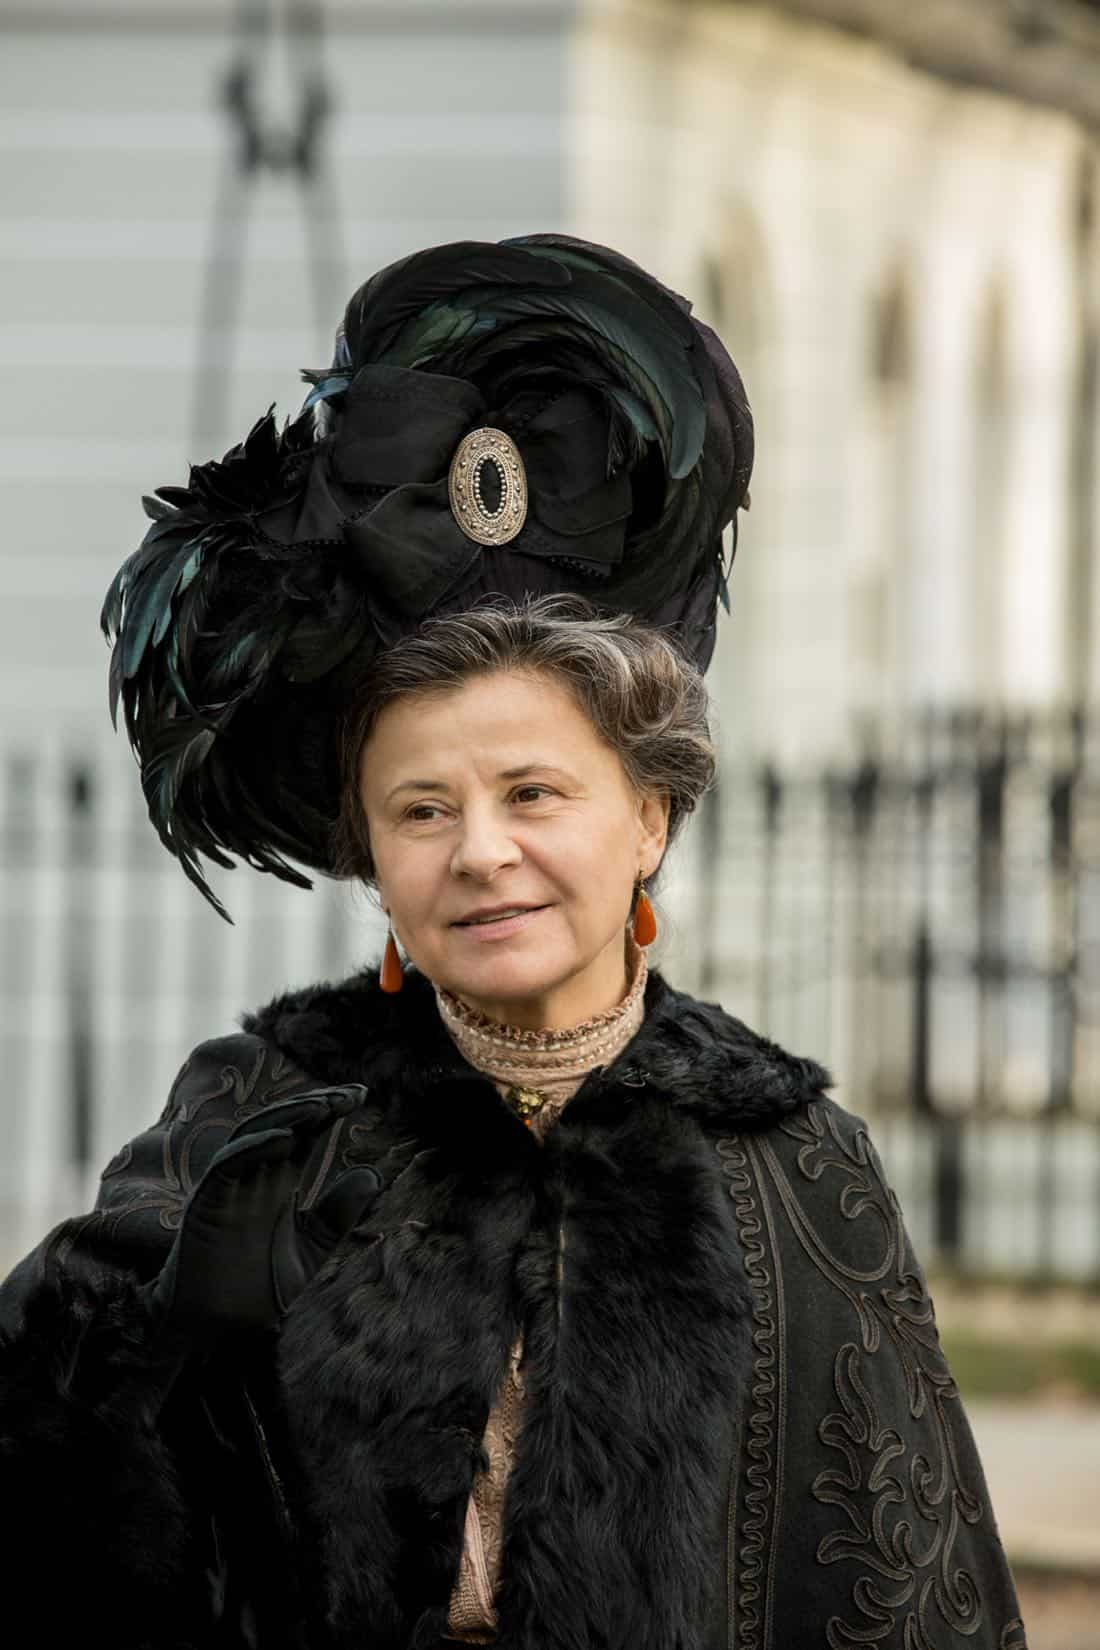 Tracey Ullman Aunt Juley Howards End